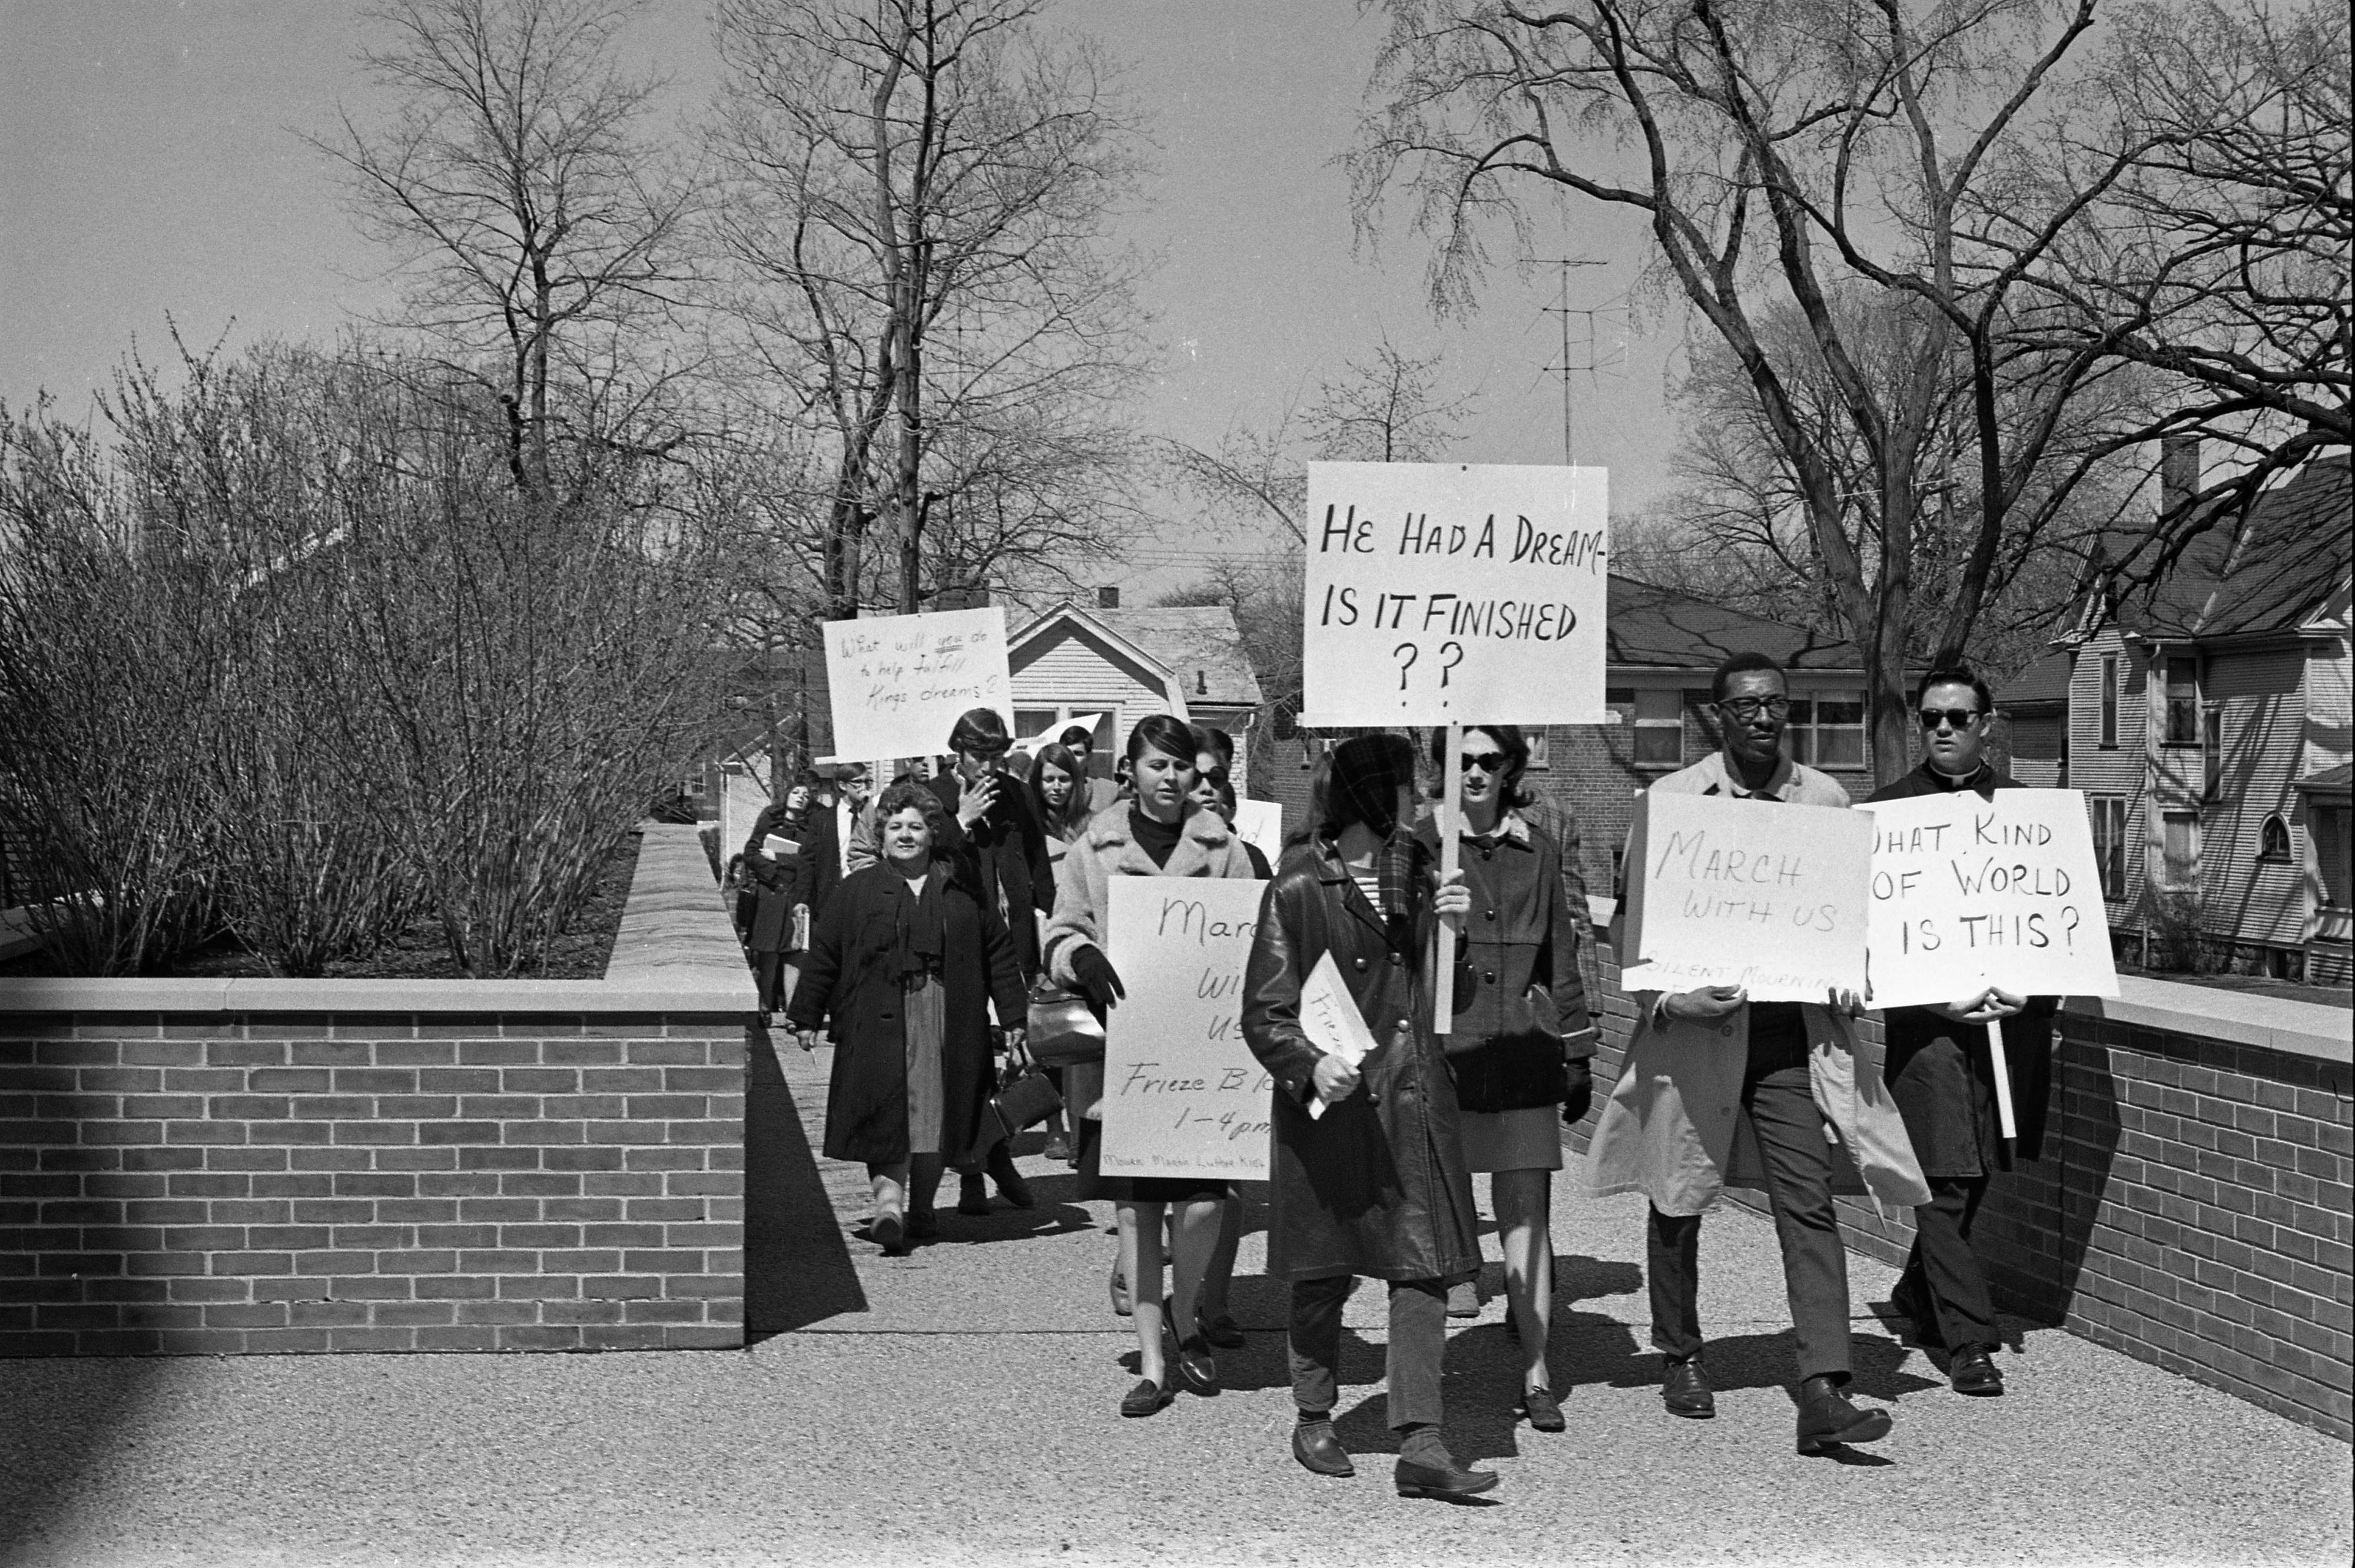 Marching On Huron Street With Signs After Martin Luther King Jr Memorial Services, April 1968 image